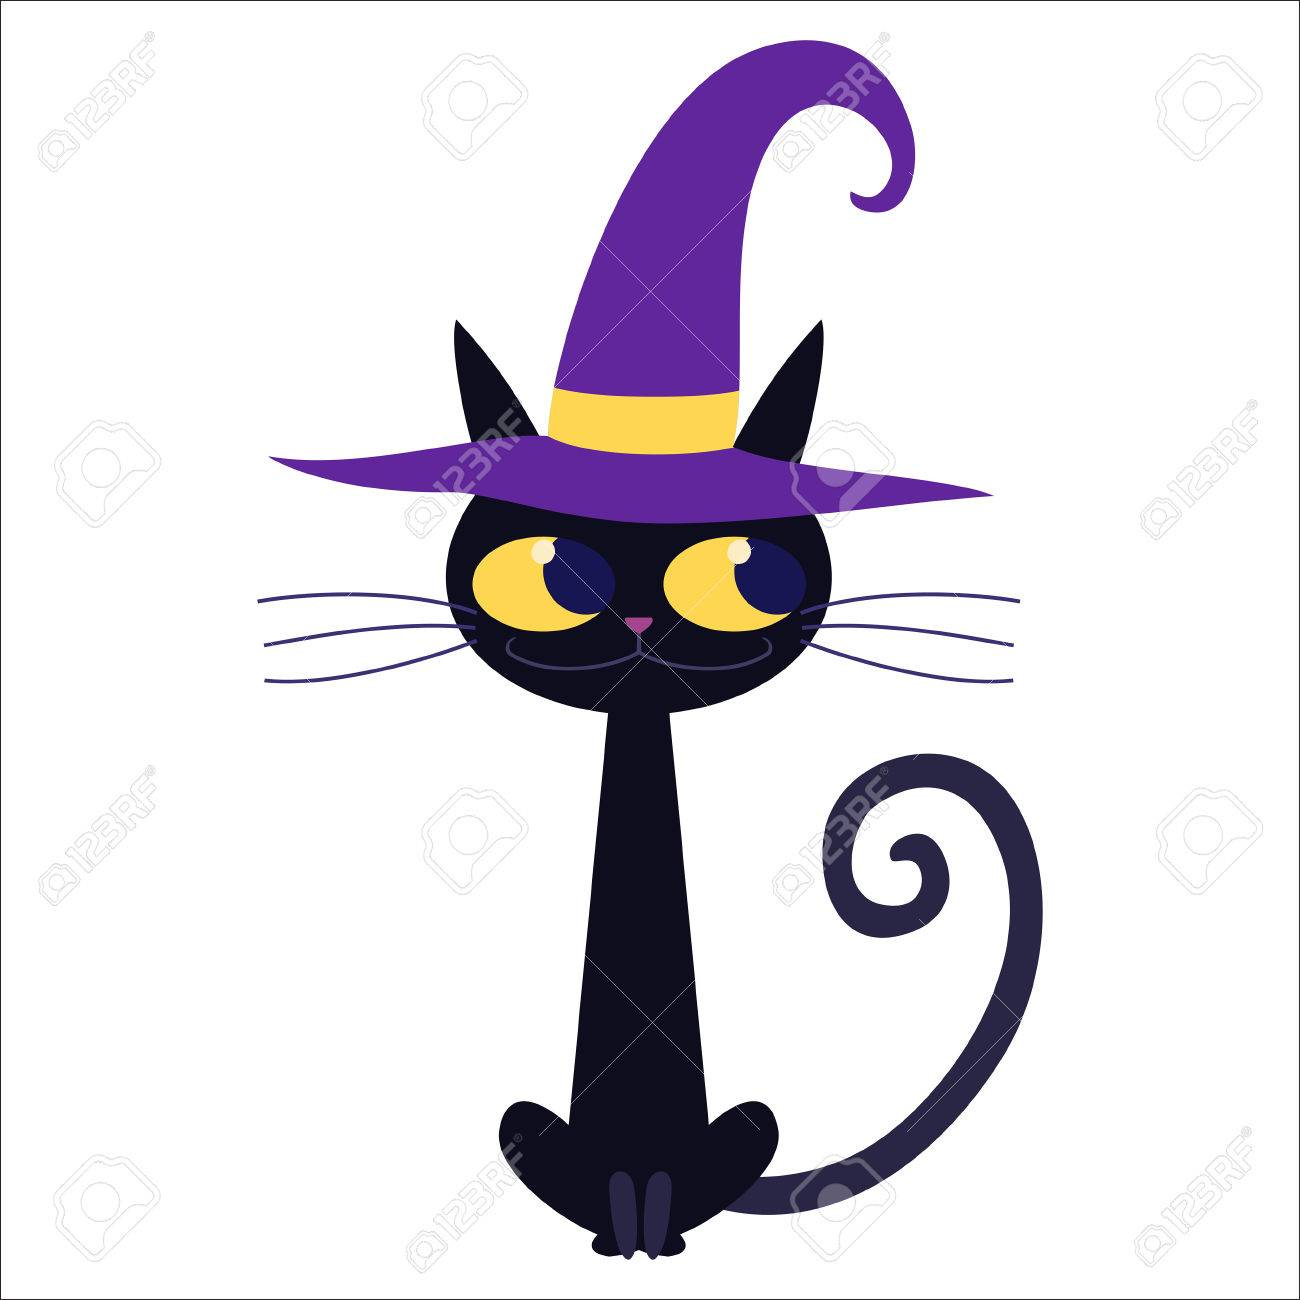 Cartoon Black Cat Isolated Illustration Royalty Free Cliparts Vectors And Stock Illustration Image 24638595